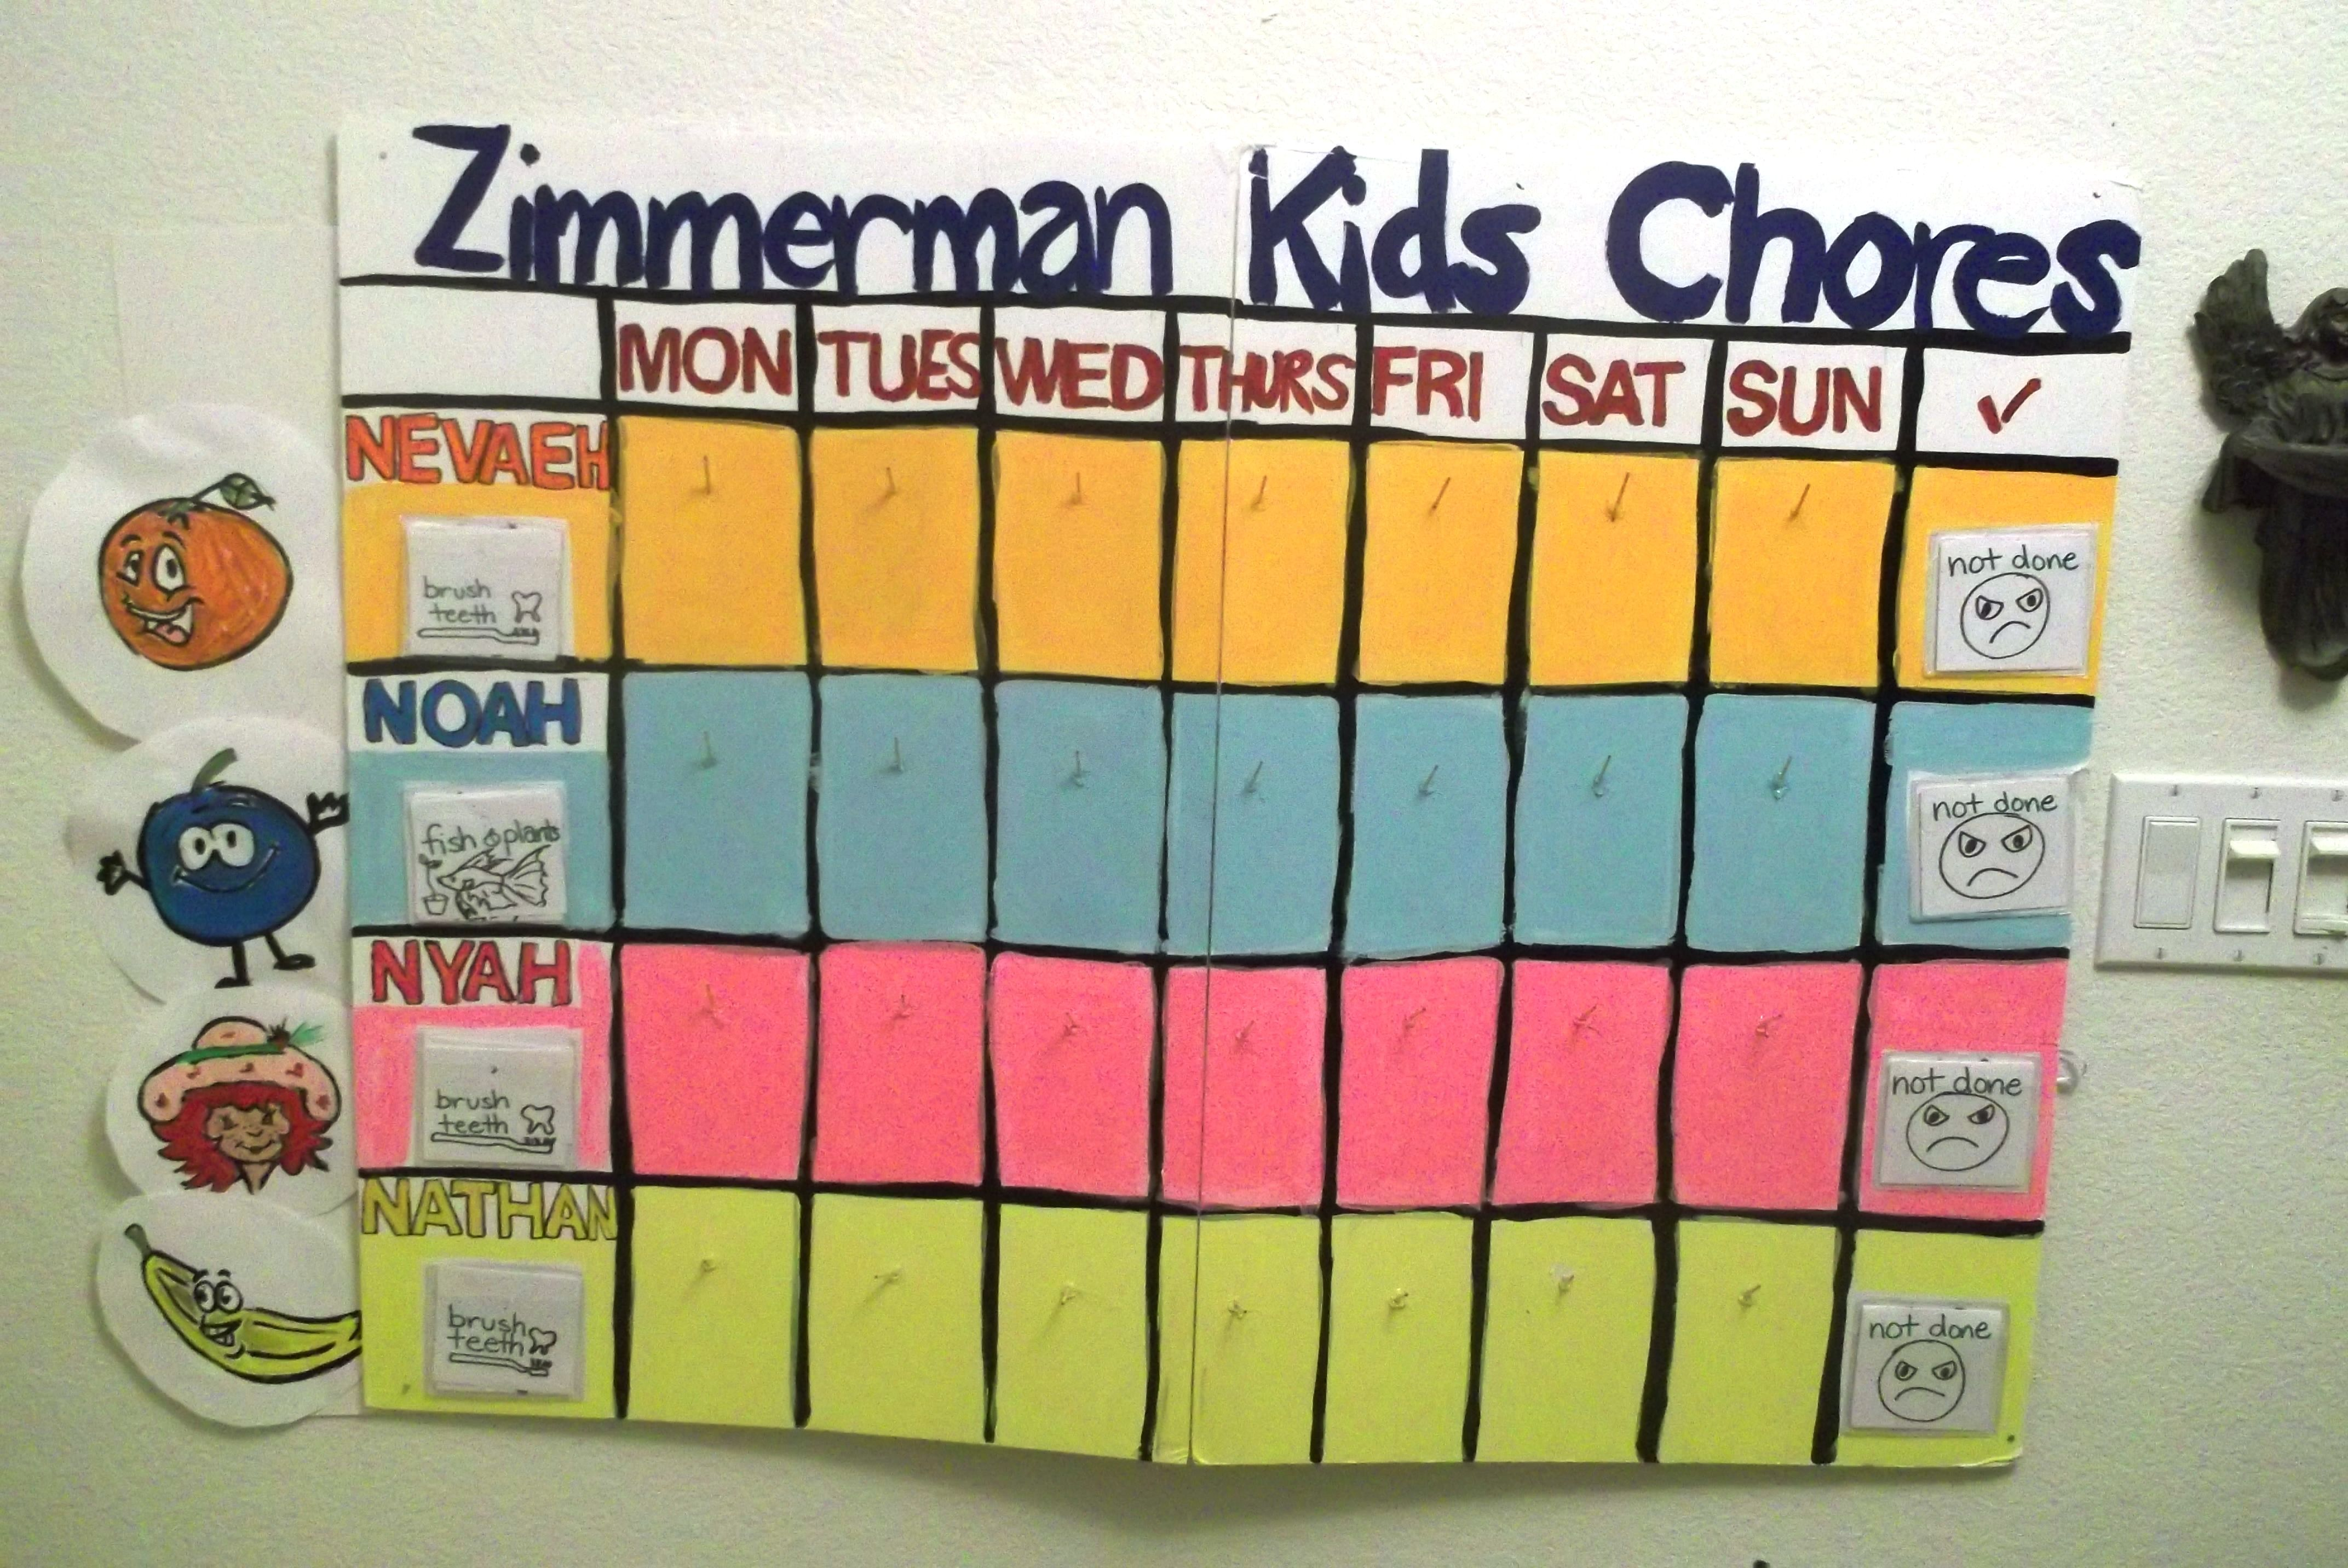 Make Your Own Chore Chart With Items Around The House Supplies Needed Toothpicks Paint Sharpies Cardboard Posterboard Chore Cards Chores For Kids Note Cards [ 2864 x 4288 Pixel ]